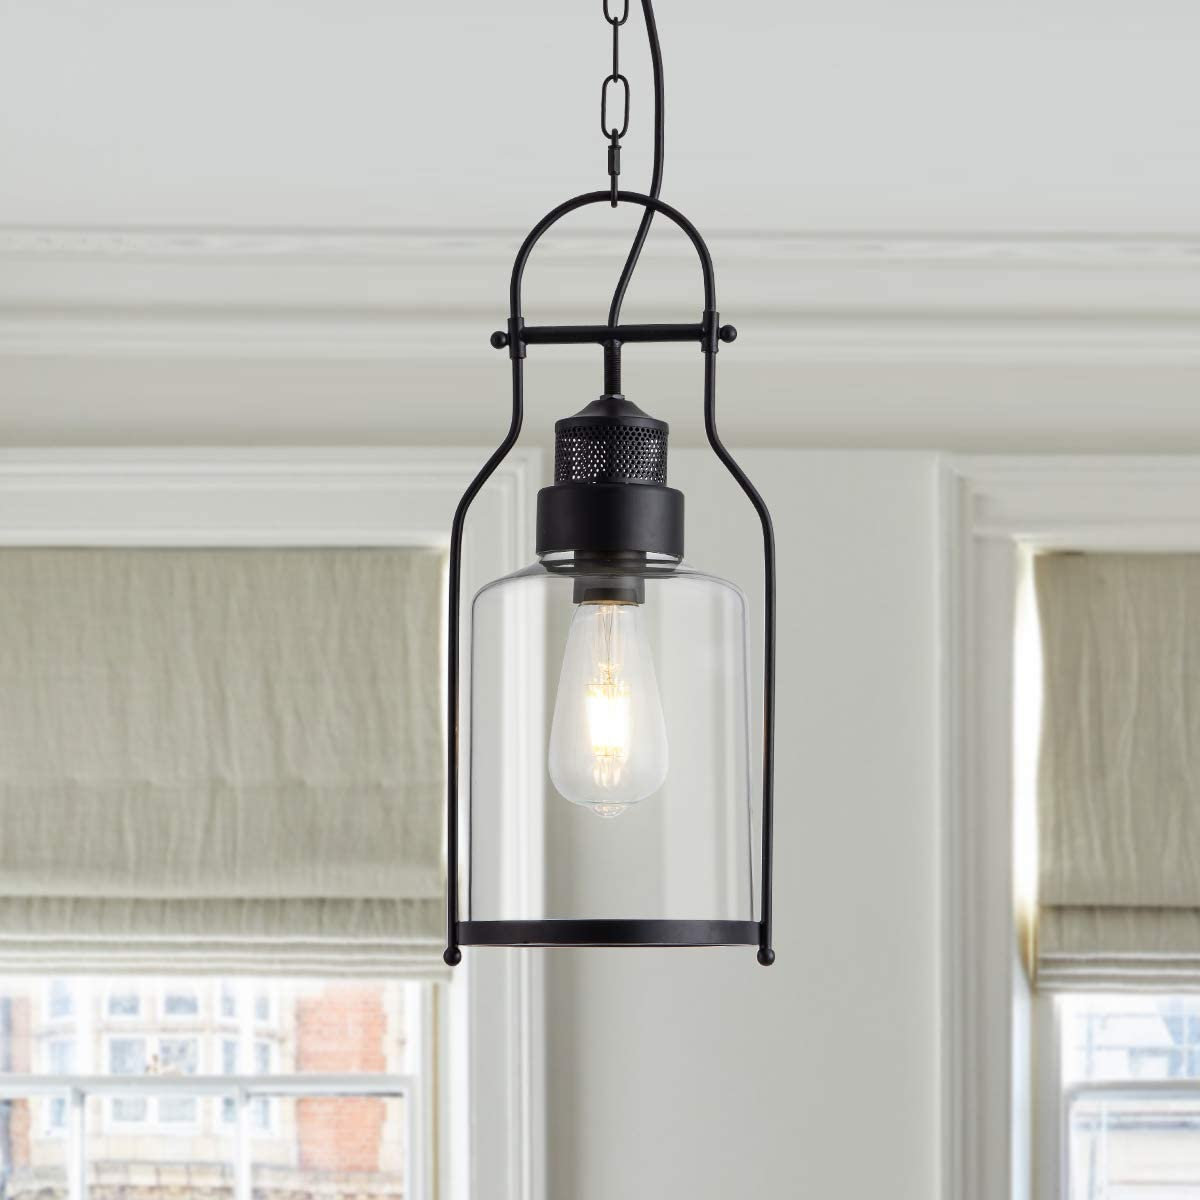 Industrial Pendant Light Glass Shape Hanging Kitchen Island Light with Adjustable Chain Farmhouse Rustic Pendant Lighting Fixture for Dining Room Kitchen Bar